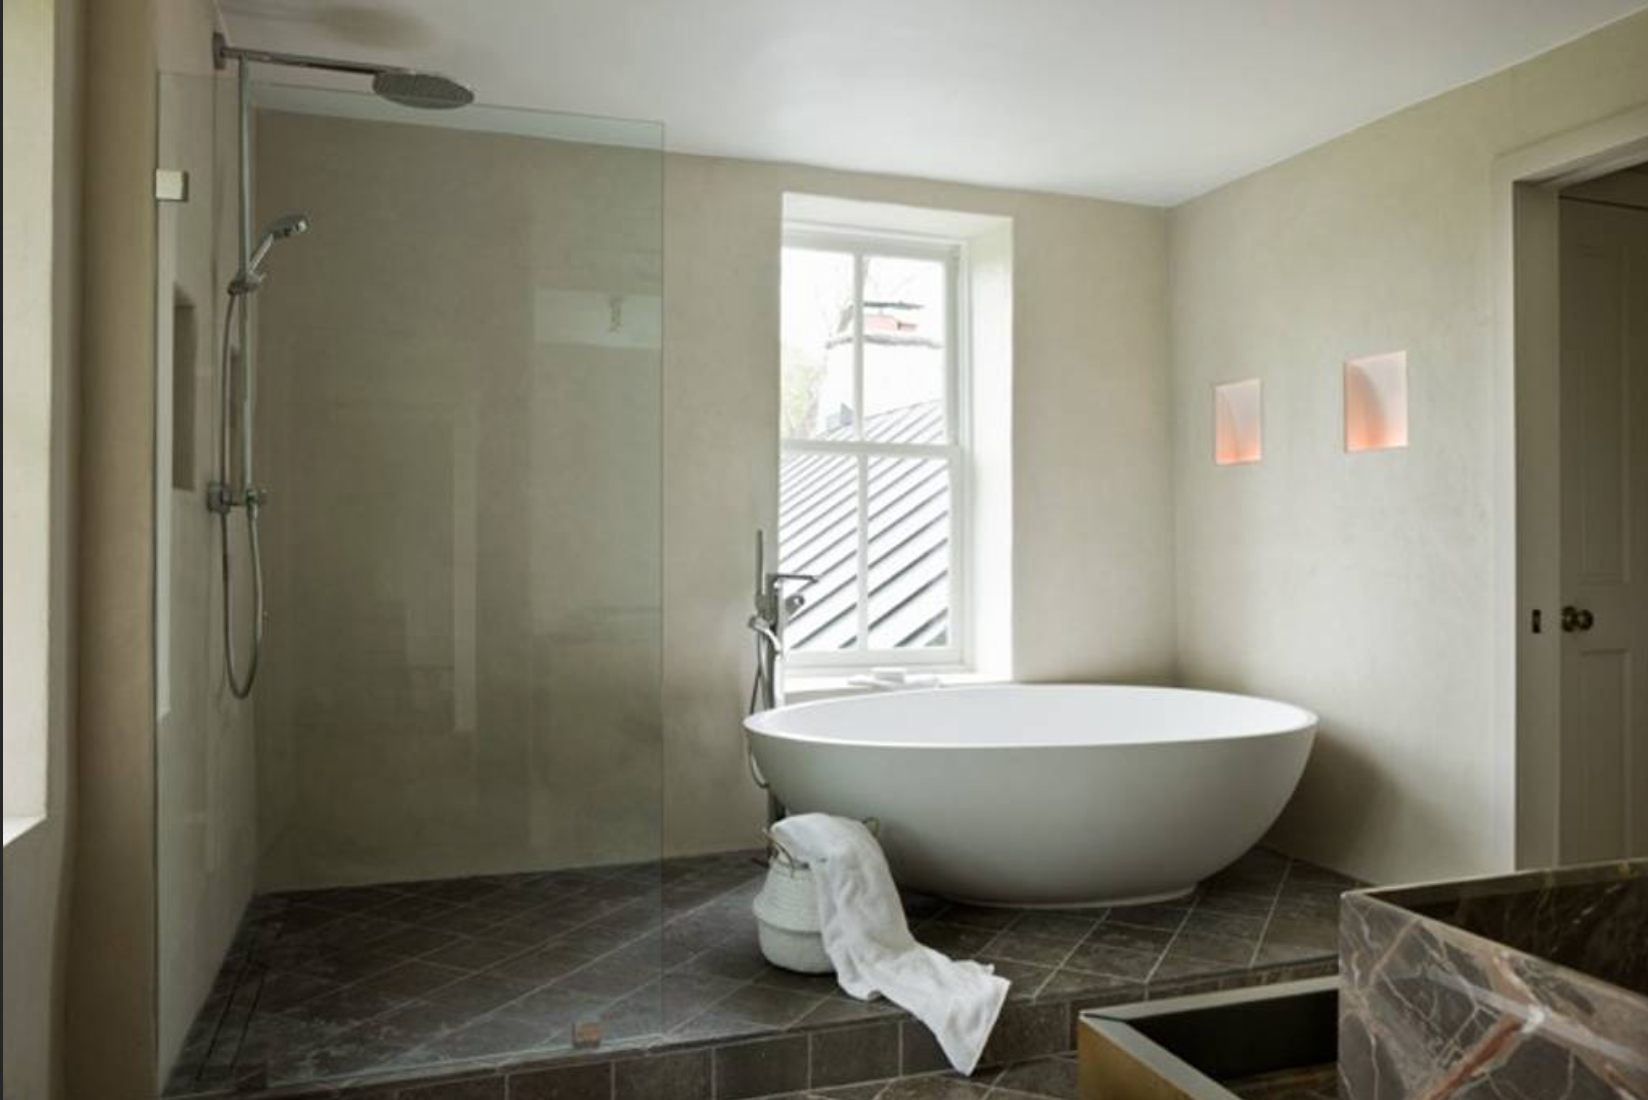 ... and the master bath boasts a massive stone tub that is just perfect to soak in. (Image: Ashley Hafstead)